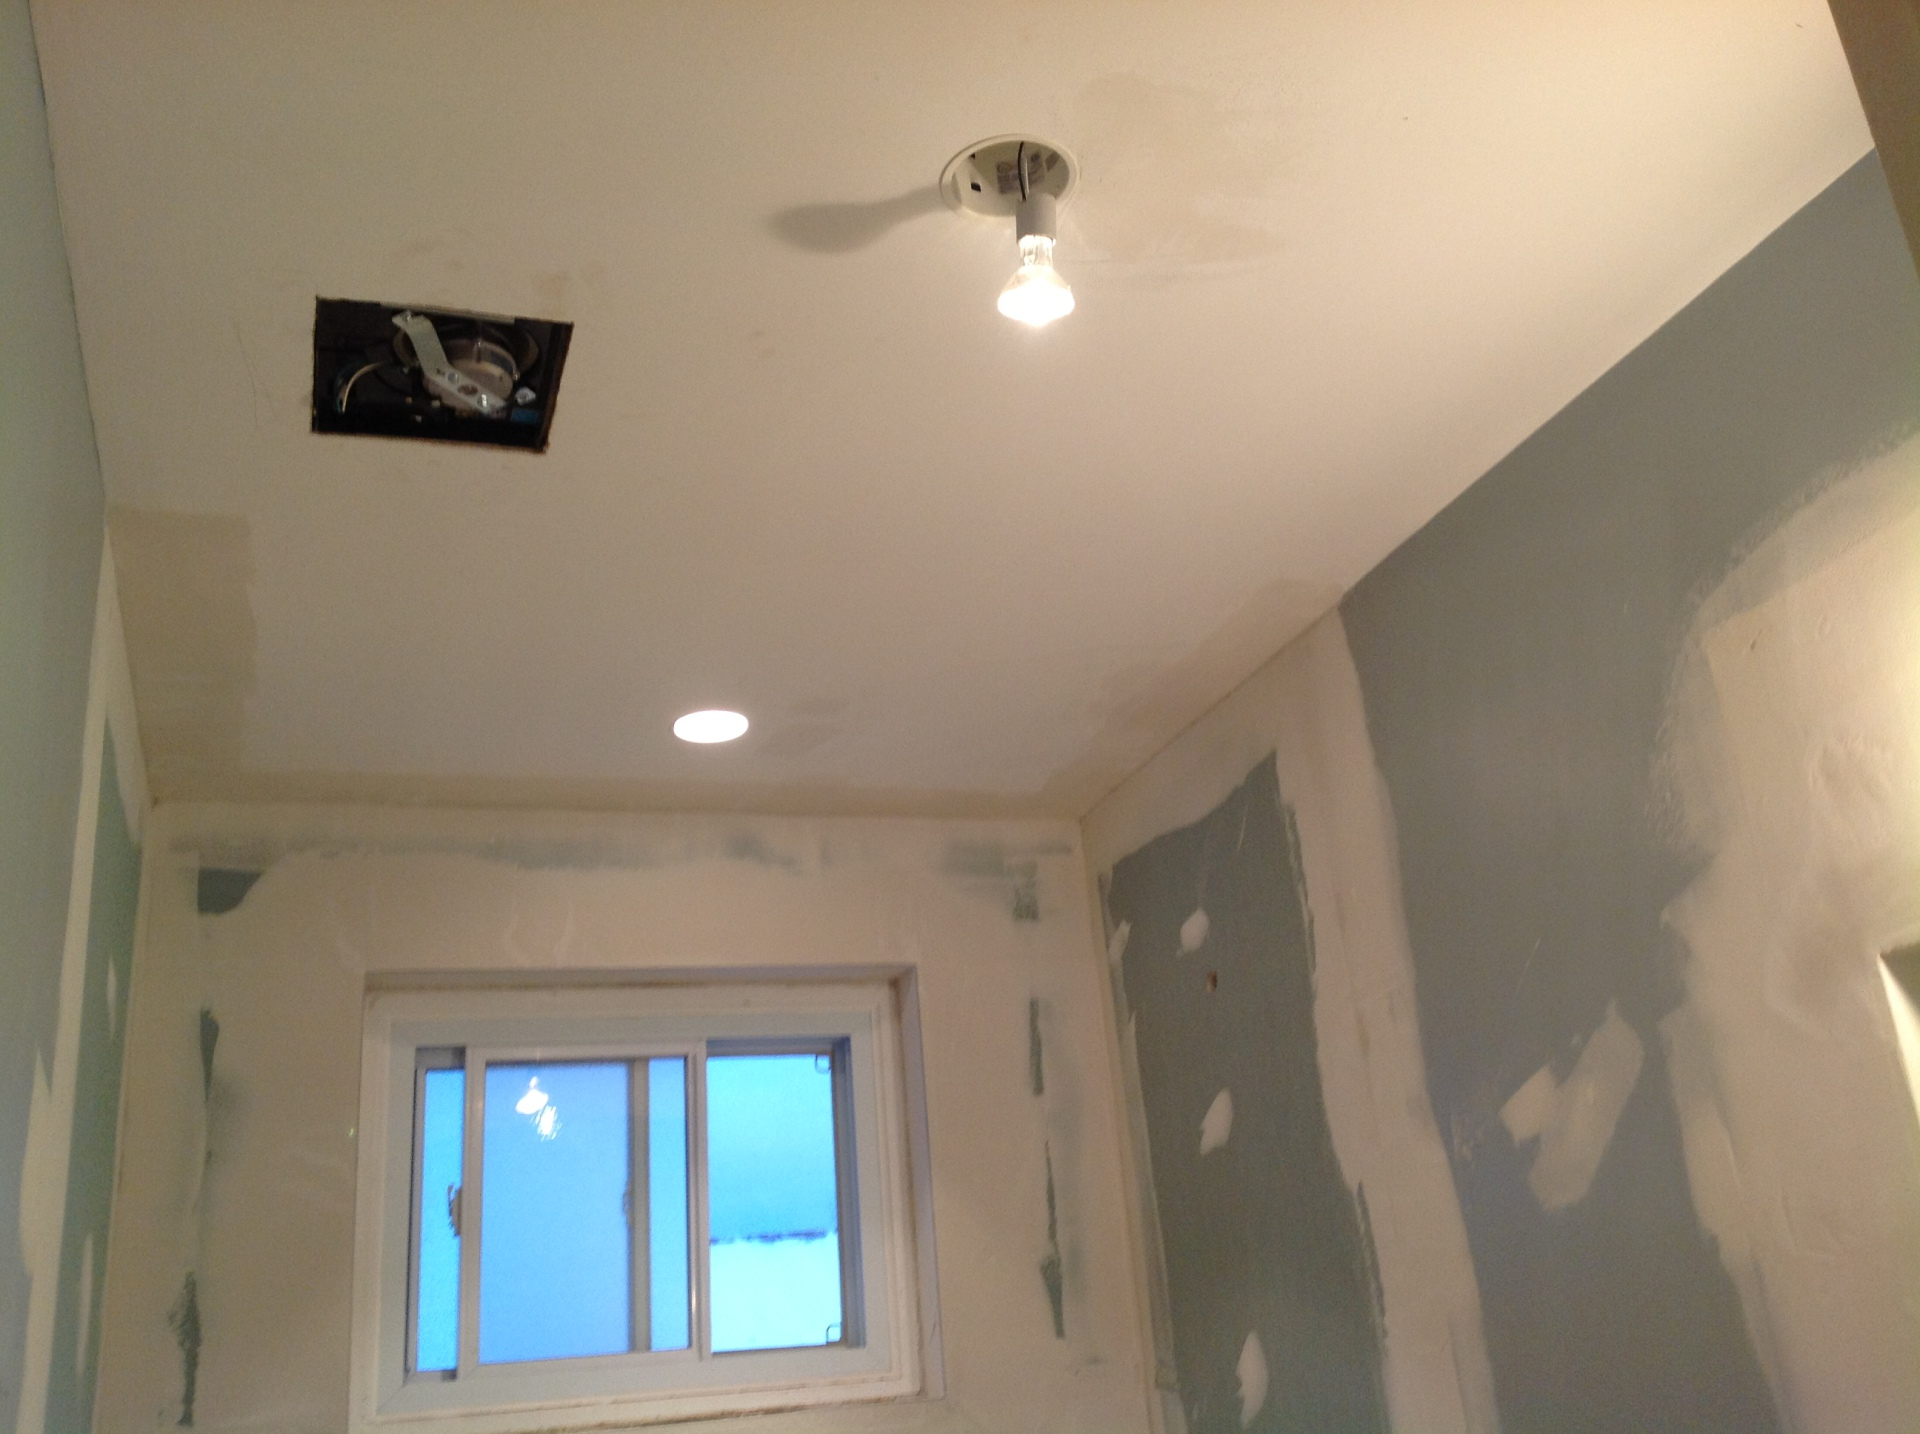 Bathroom drywall and plaster